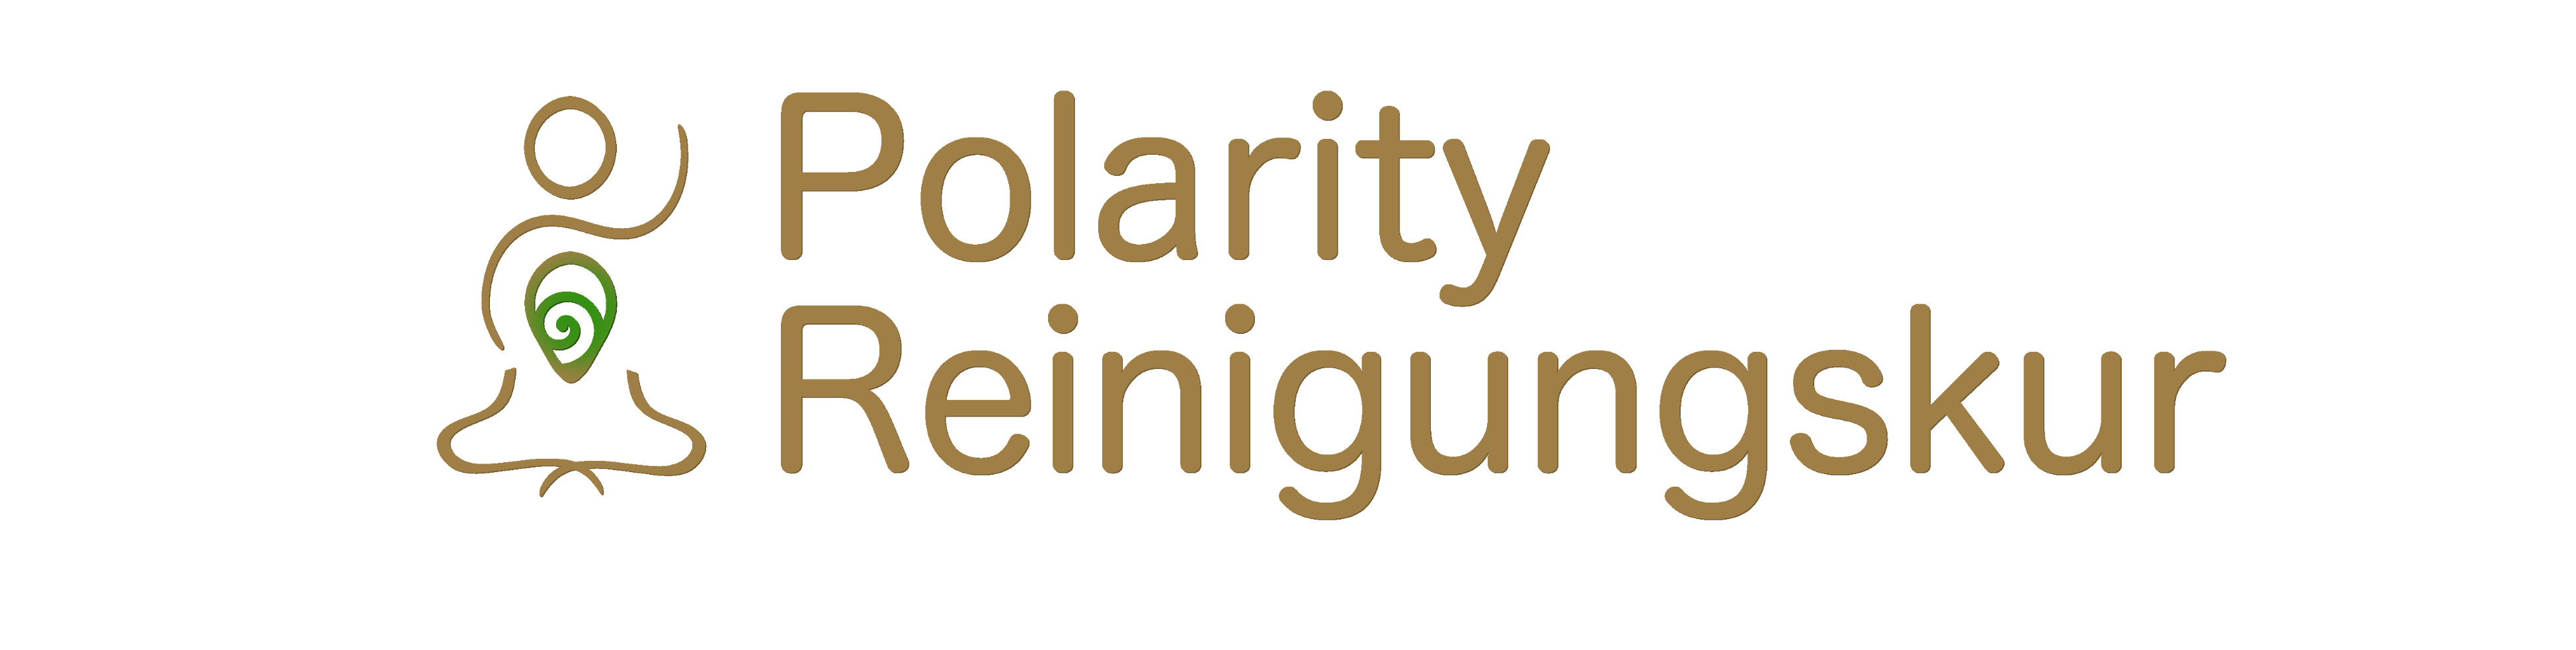 polarity reinigungskur 1